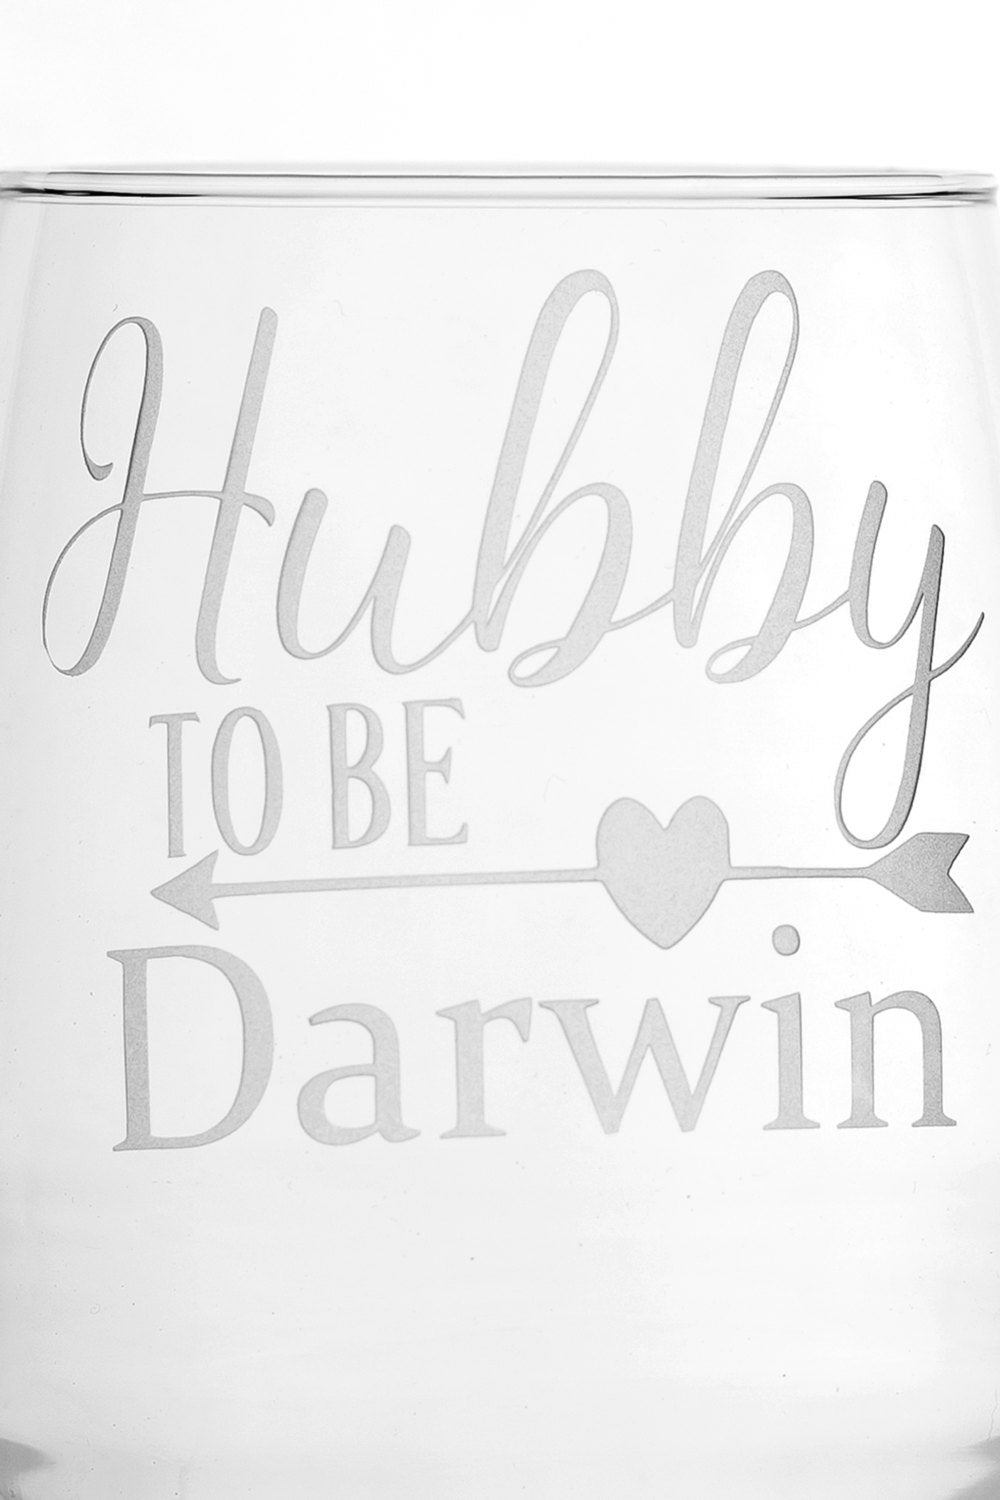 Personalized Hubby and Wifey To Be Bridal Shower Gift Engagement Gift stemless wine glass set